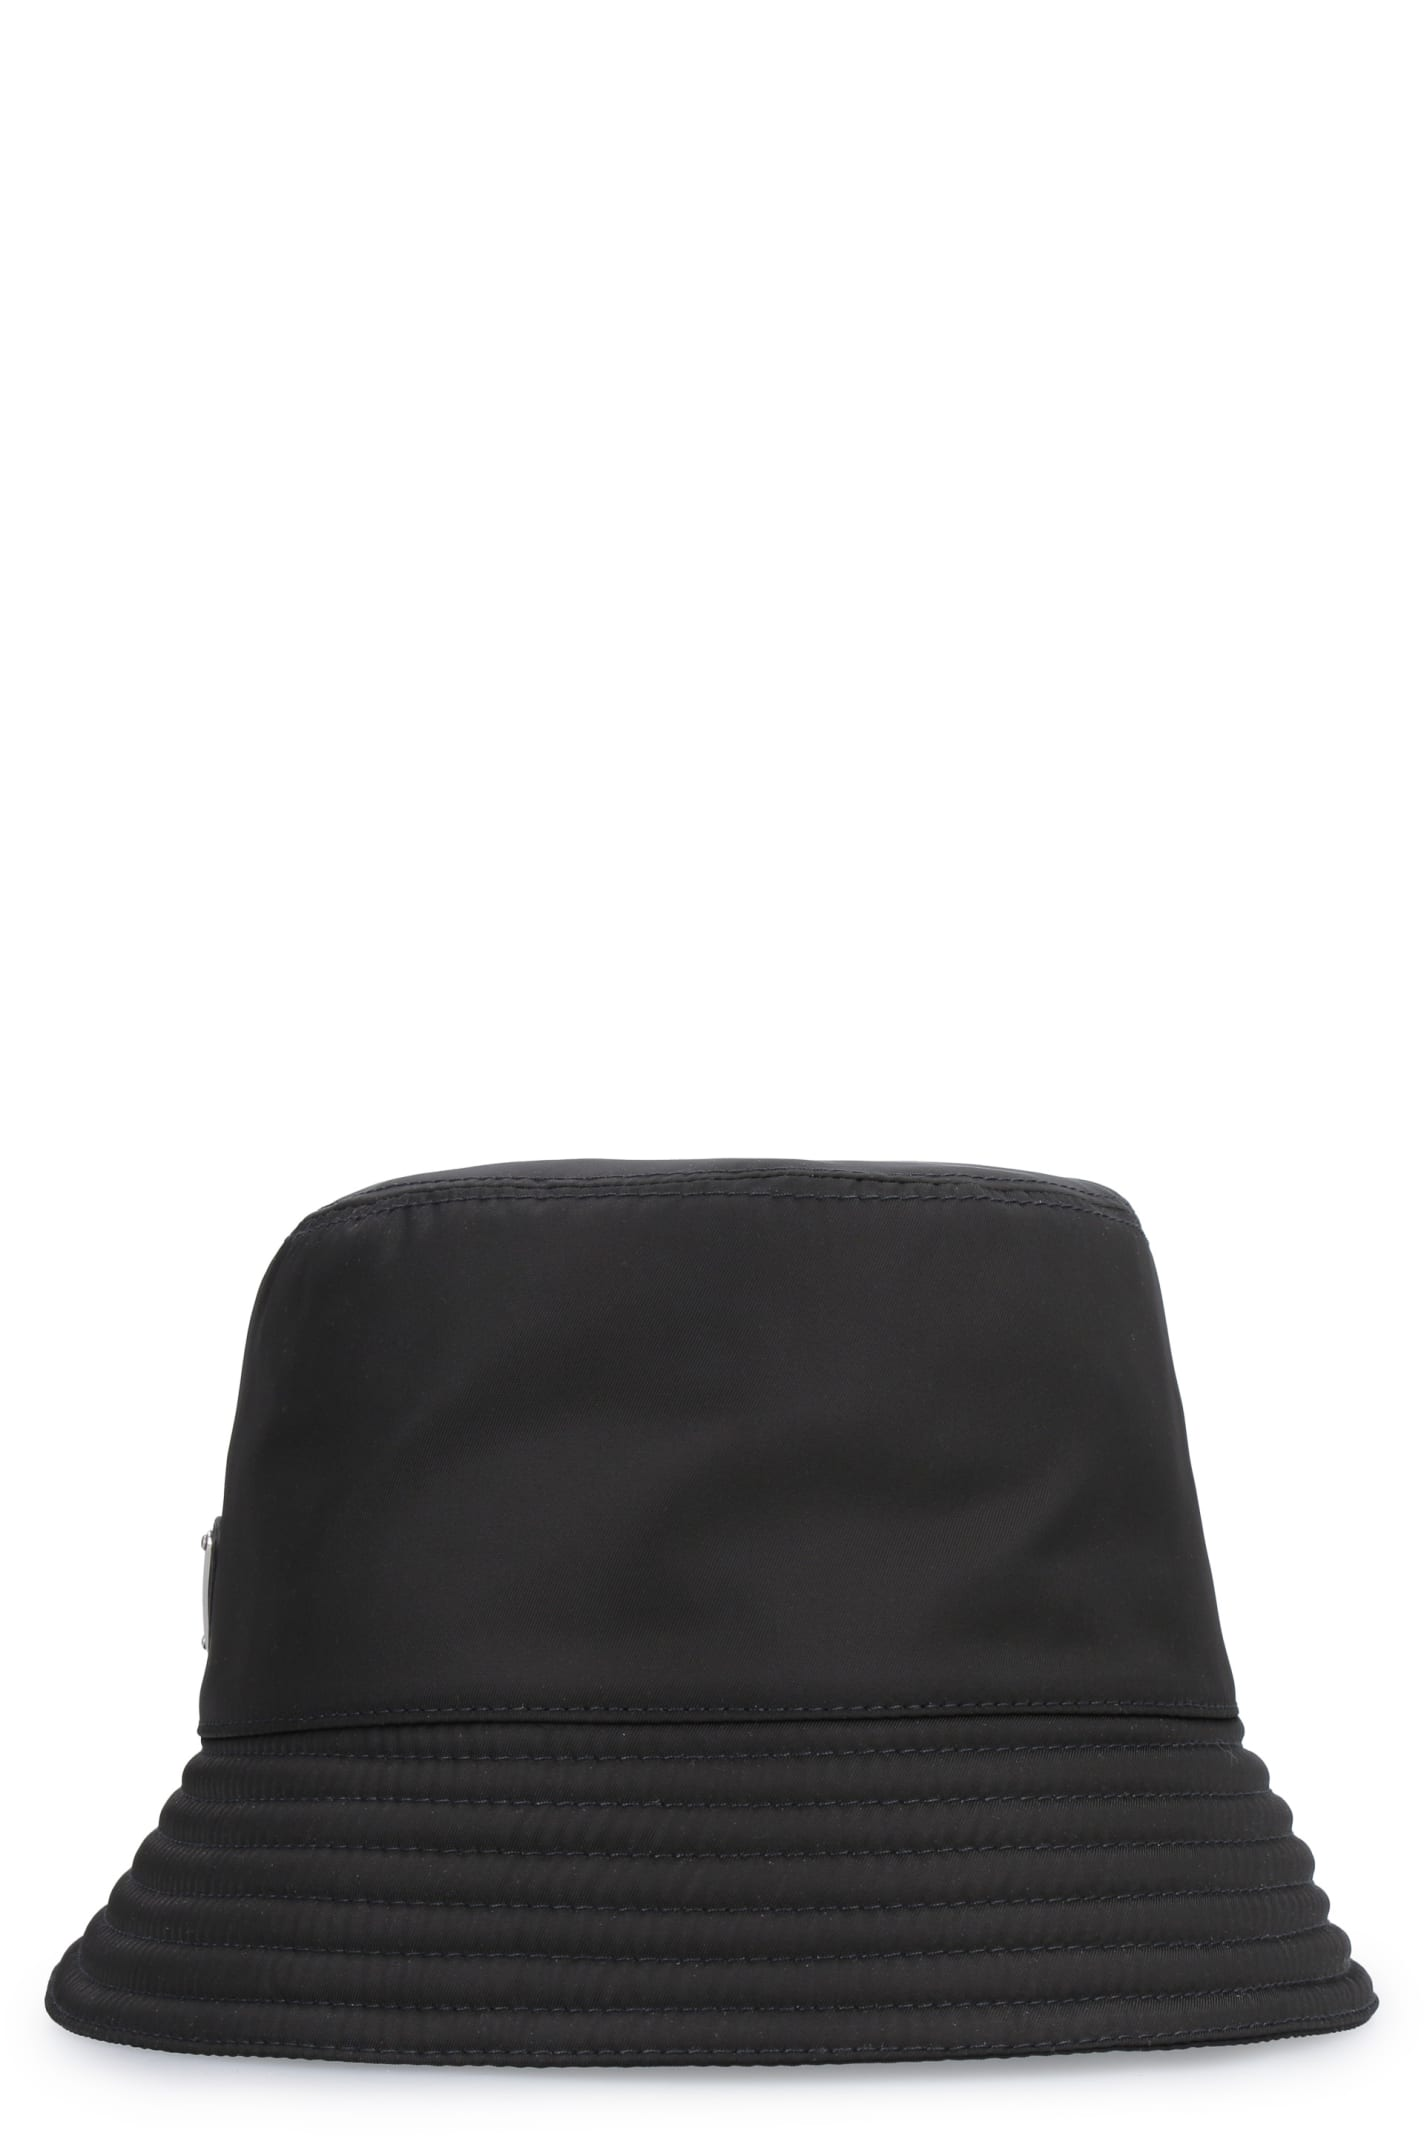 Prada Techno Nylon Rain Hat